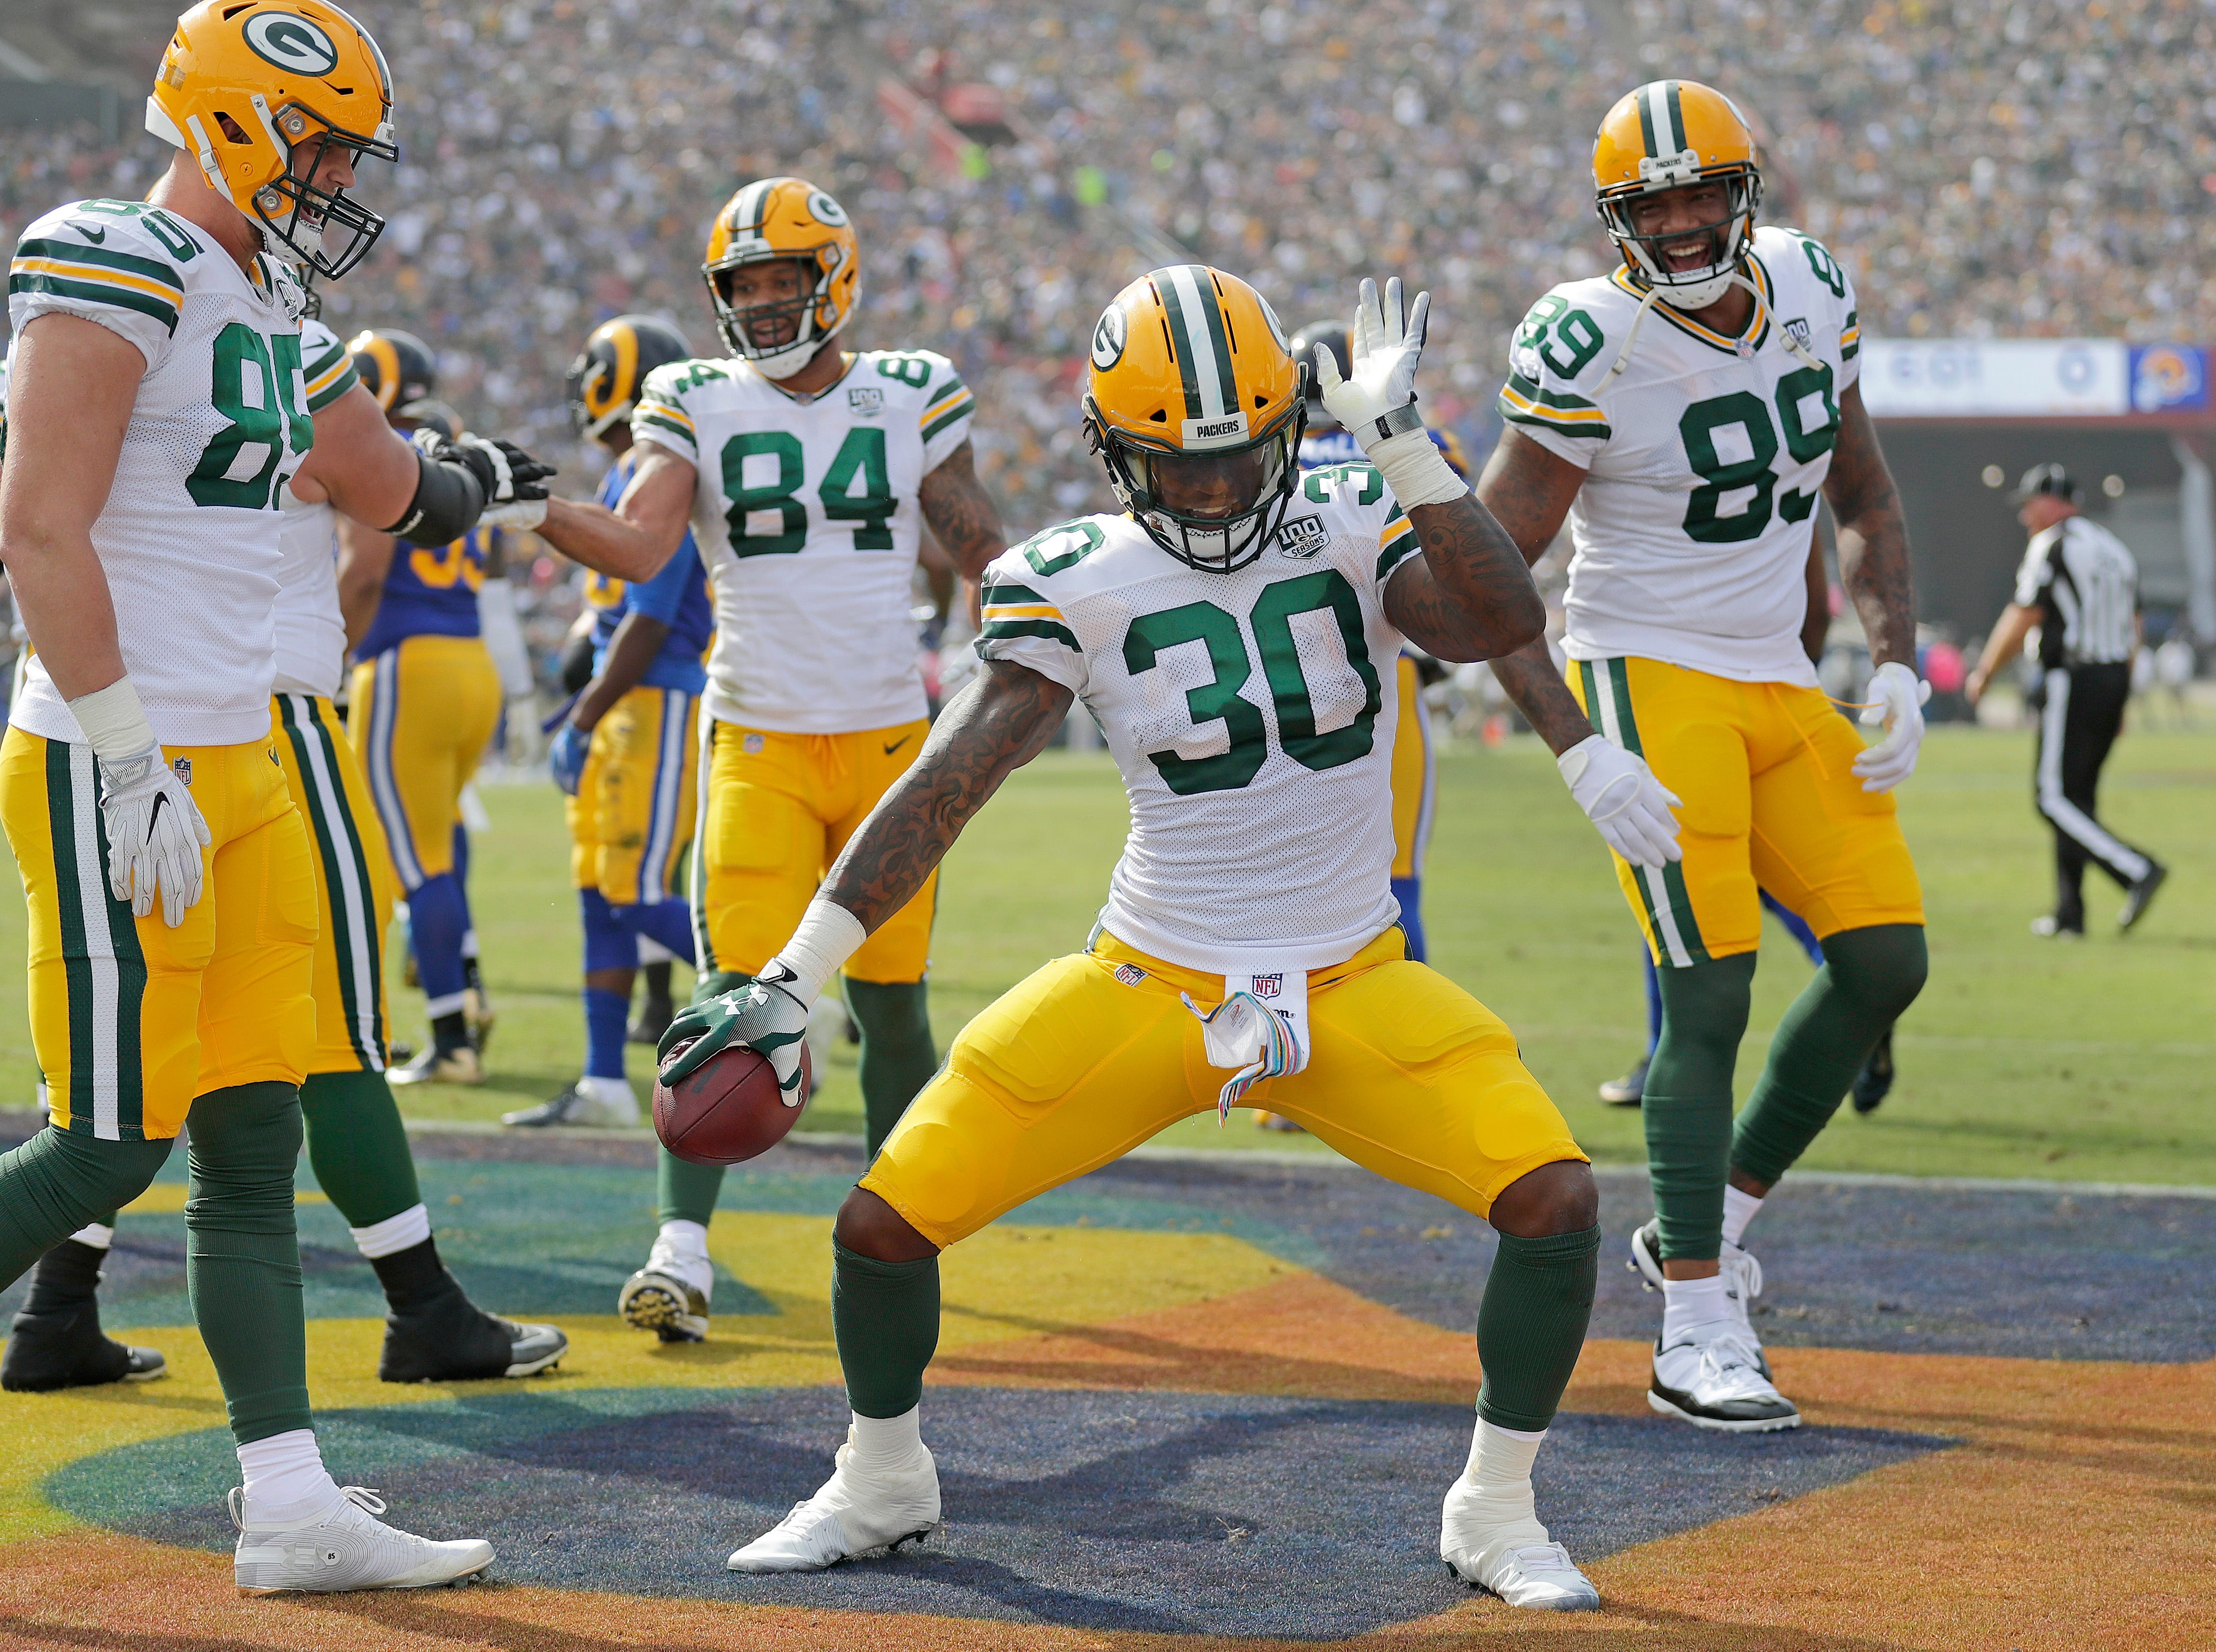 Green Bay Packers running back Jamaal Williams (30) celebrates his touchdown run against the LA Rams Sunday, October 28, 2018 at the Memorial Coliseum in Los Angeles.